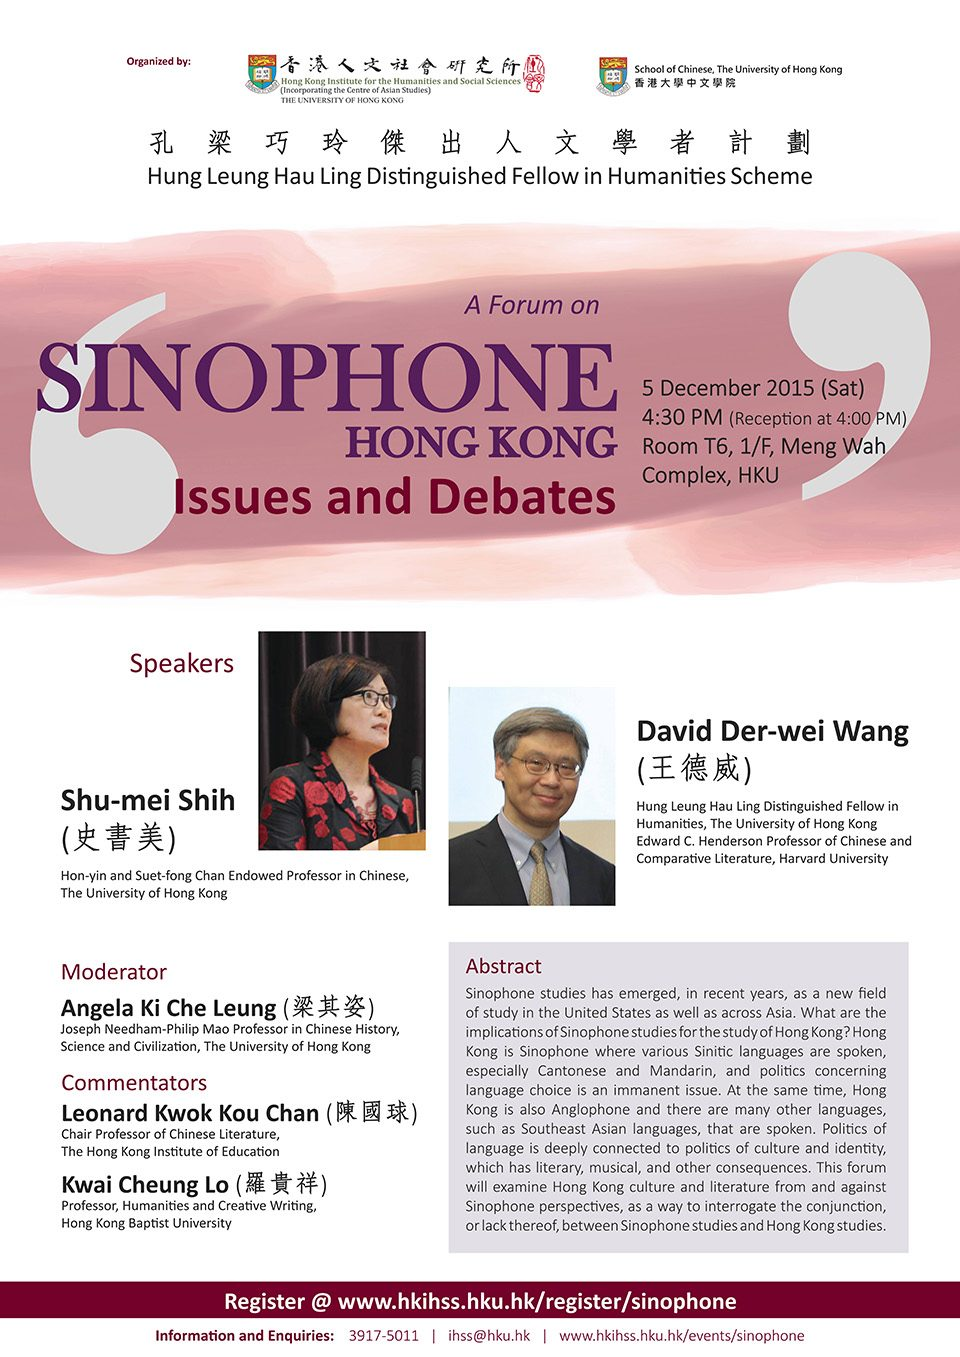 "Hung Leung Hau Ling Distinguished Fellow in Humanities Scheme: A Forum on ""Sinophone Hong Kong: Issues and Debates"" (December 5, 2015)"